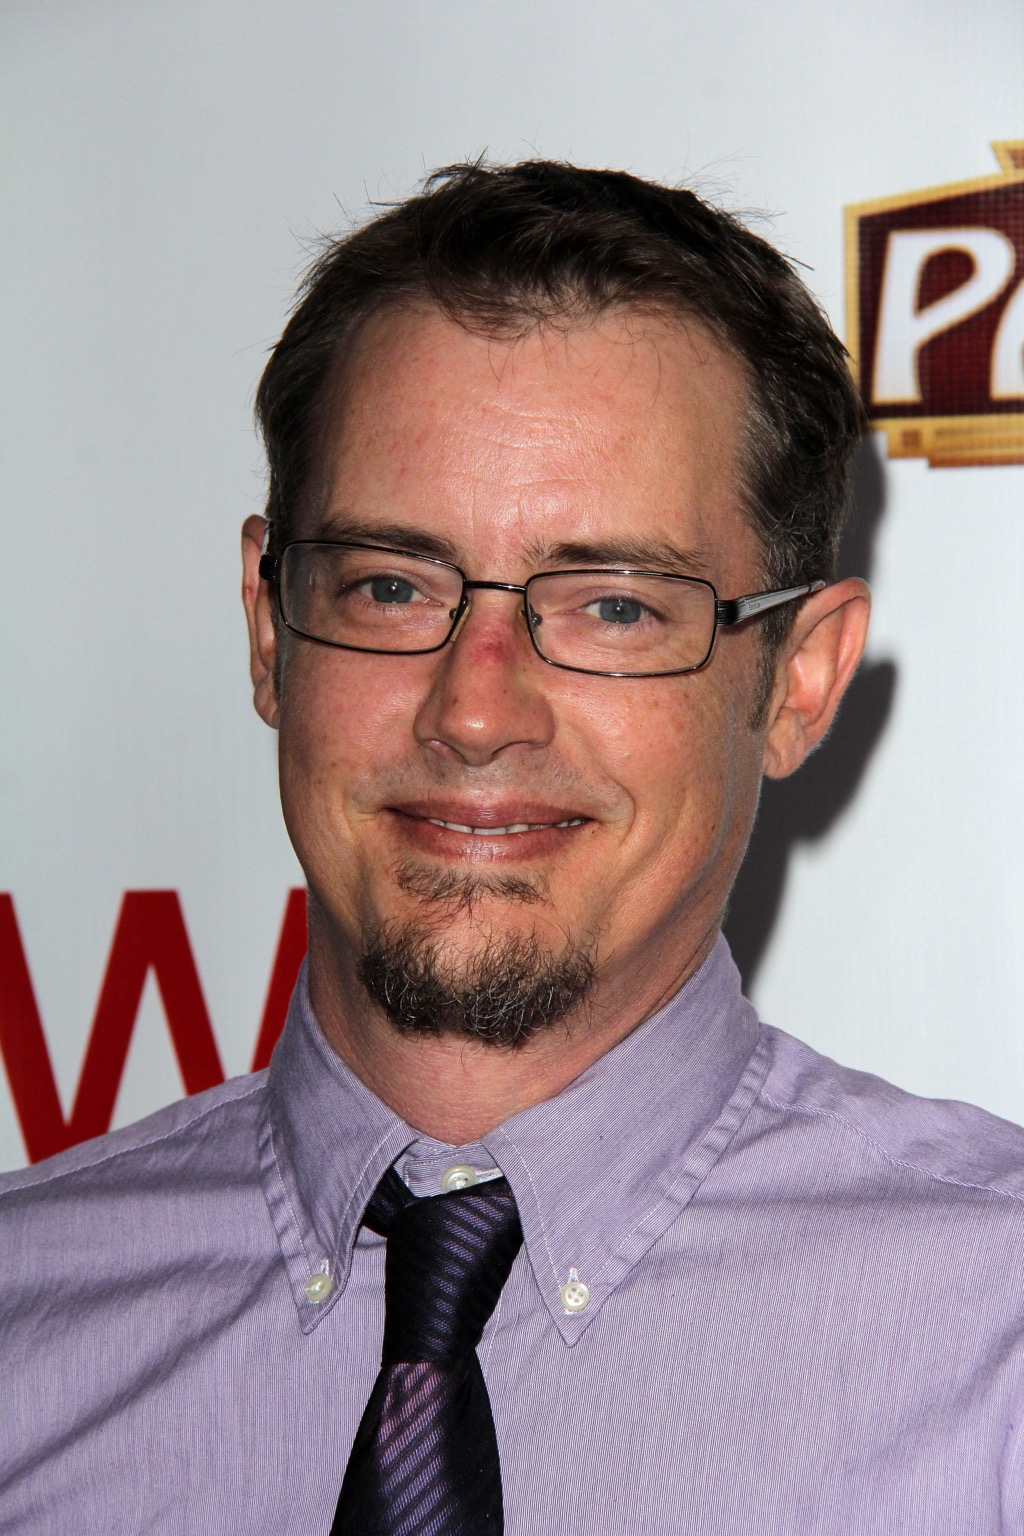 jason london hollywood stars who totally lost it